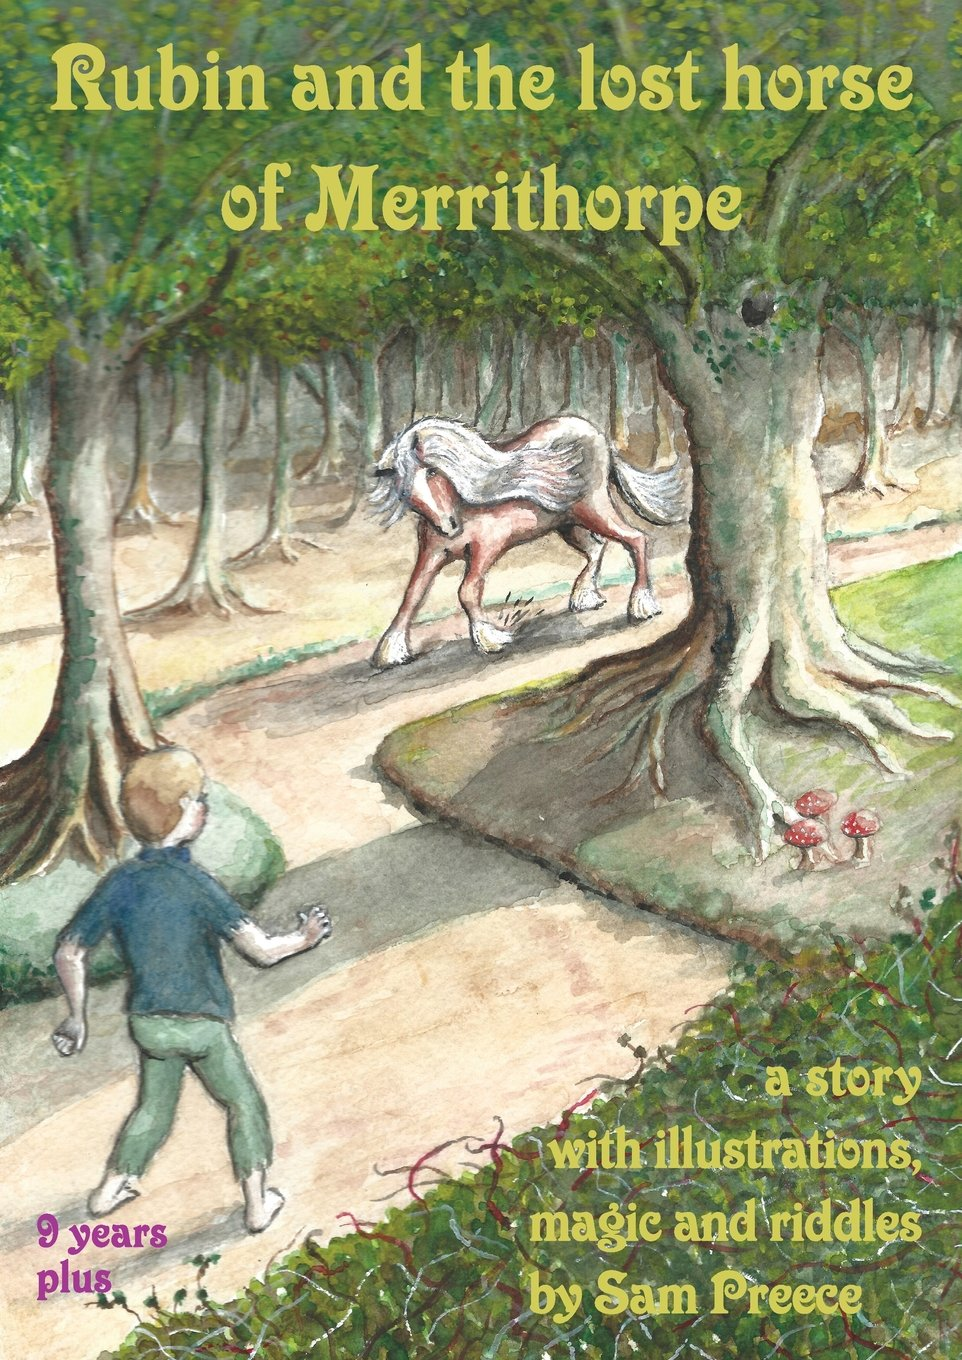 Rubin and the Lost Horse of Merrithorpe: A Story with Illustrations, Magic and Riddles PDF Text fb2 book